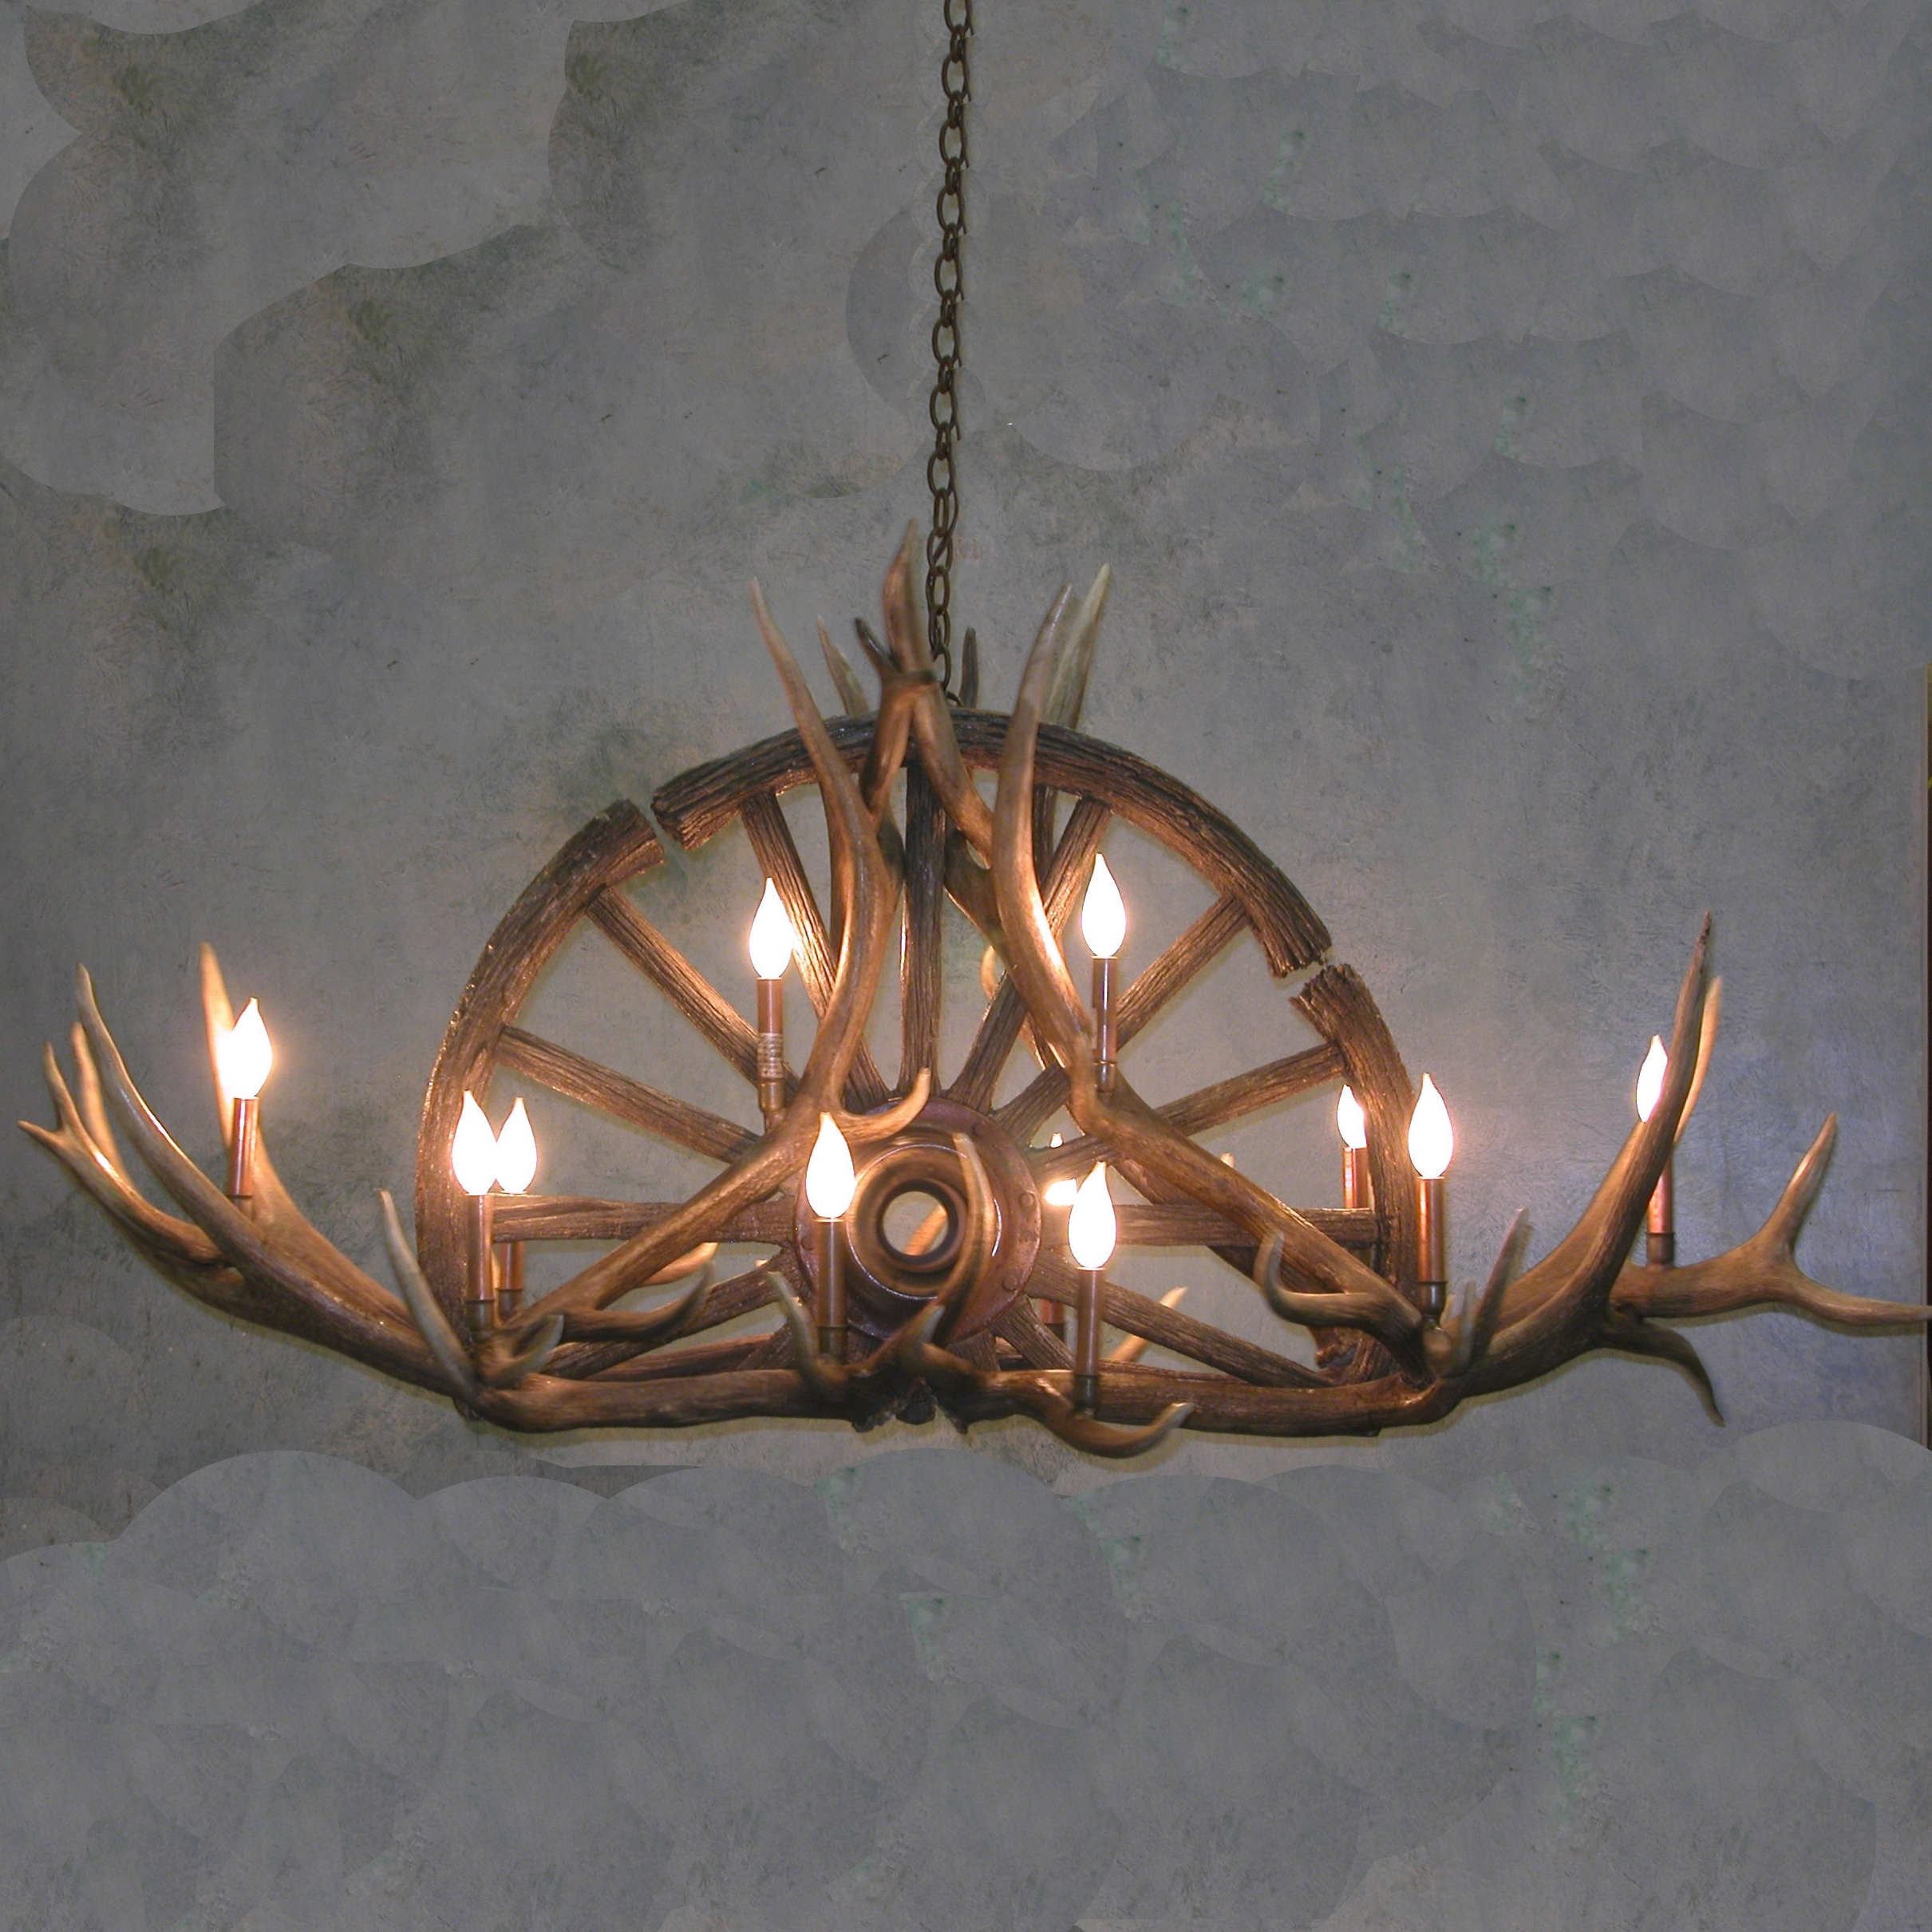 Antler Chandeliers And Lighting Inside Well Known Wagon Wheel Antler Chandelier (View 10 of 15)